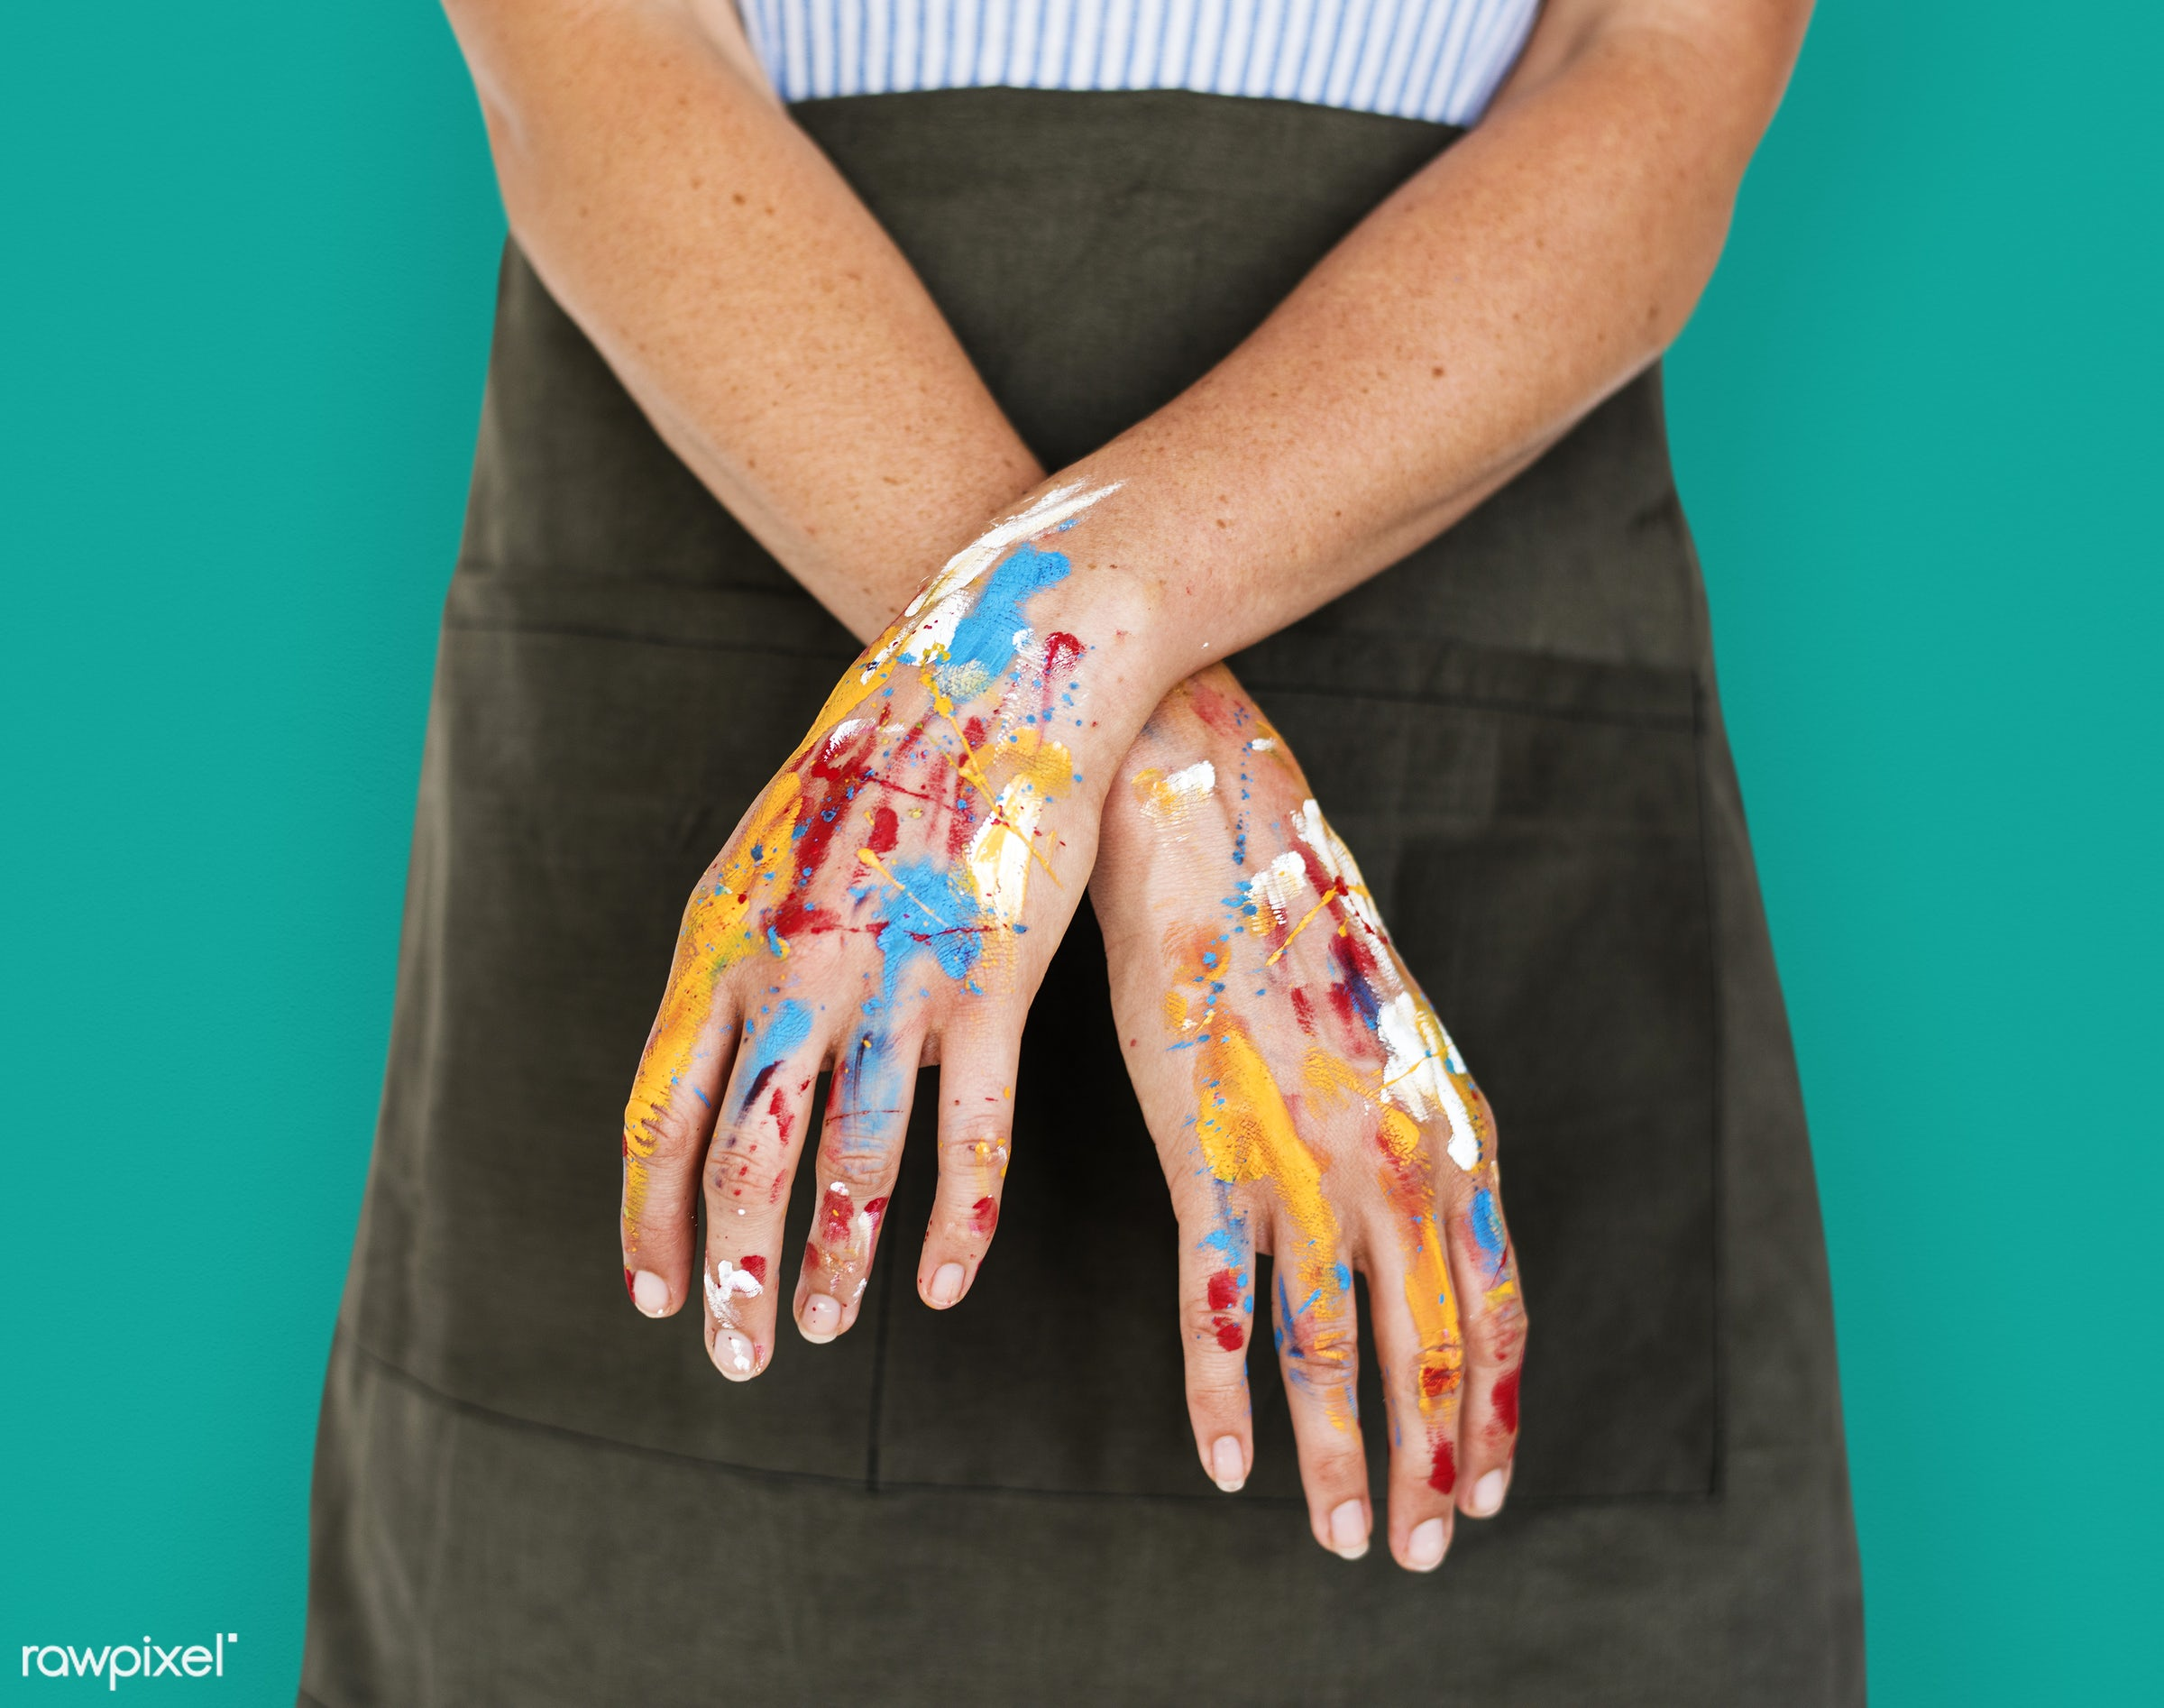 studio, person, model, race, people, style, solo, woman, lifestyle, casual, feminism, isolated, green, gesture, paint,...